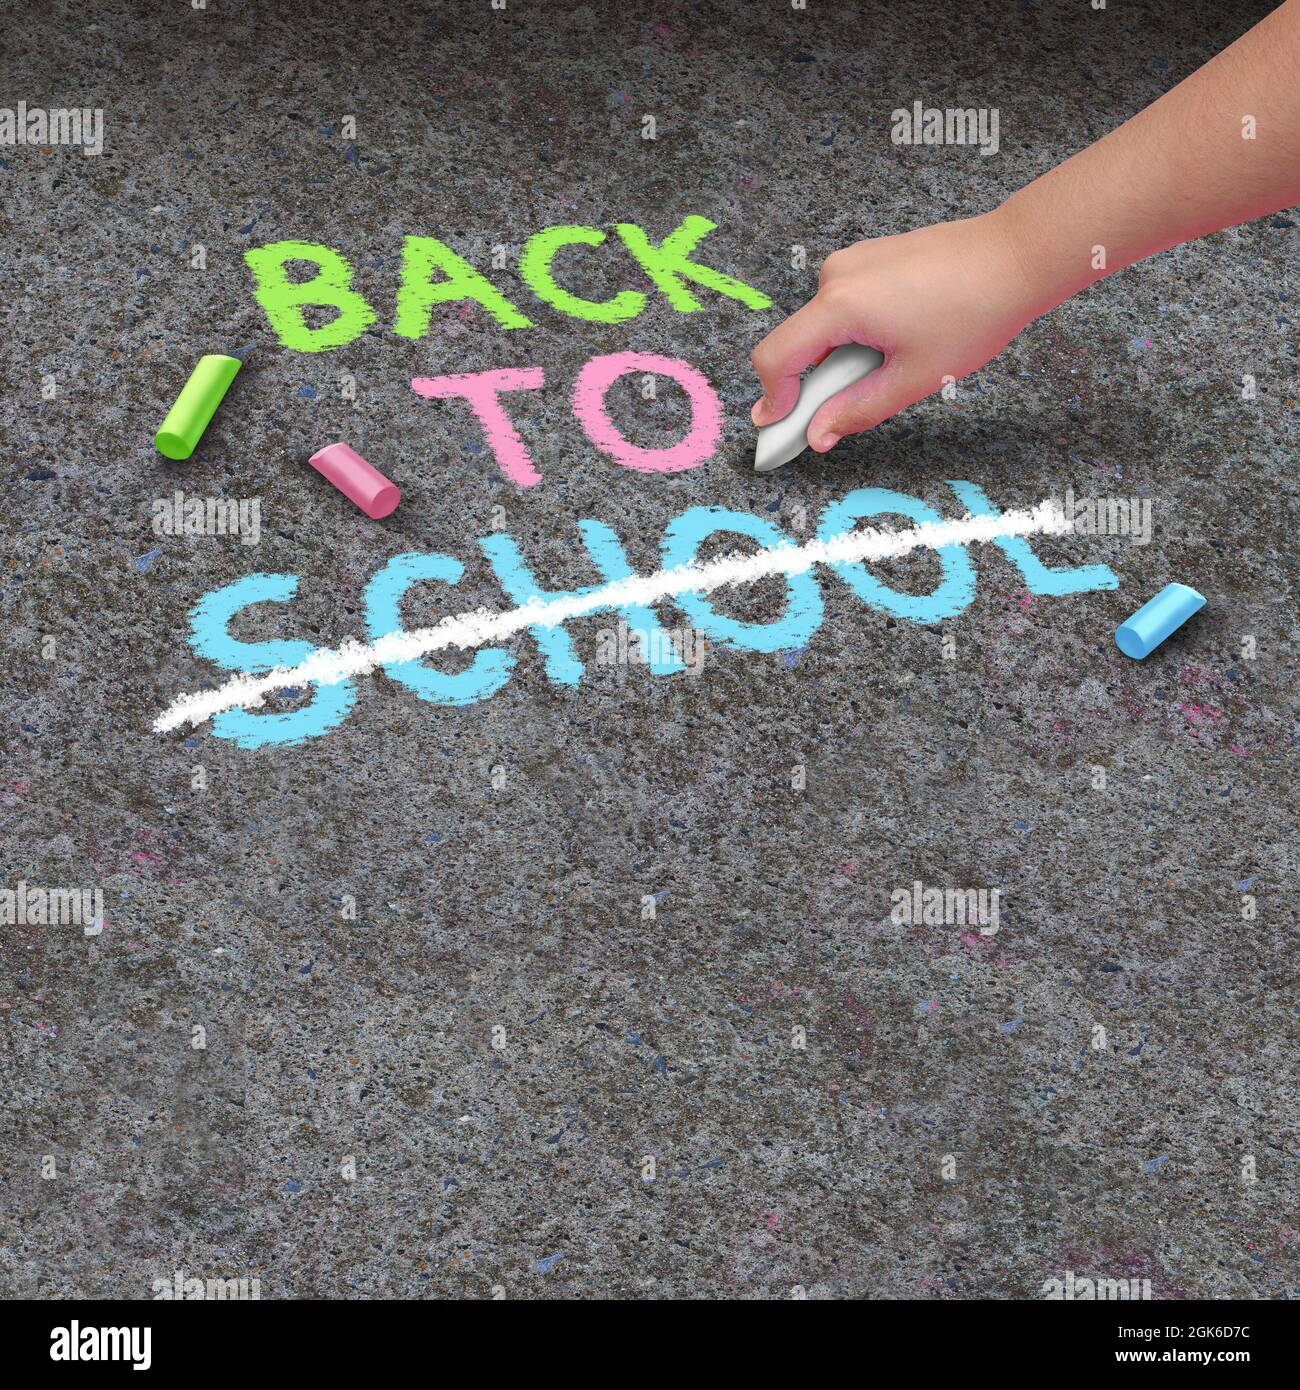 School closure and Back to school cancellation as a chalk drawing on concrete sidewalk with the hand of a child holding a color. Stock Photo